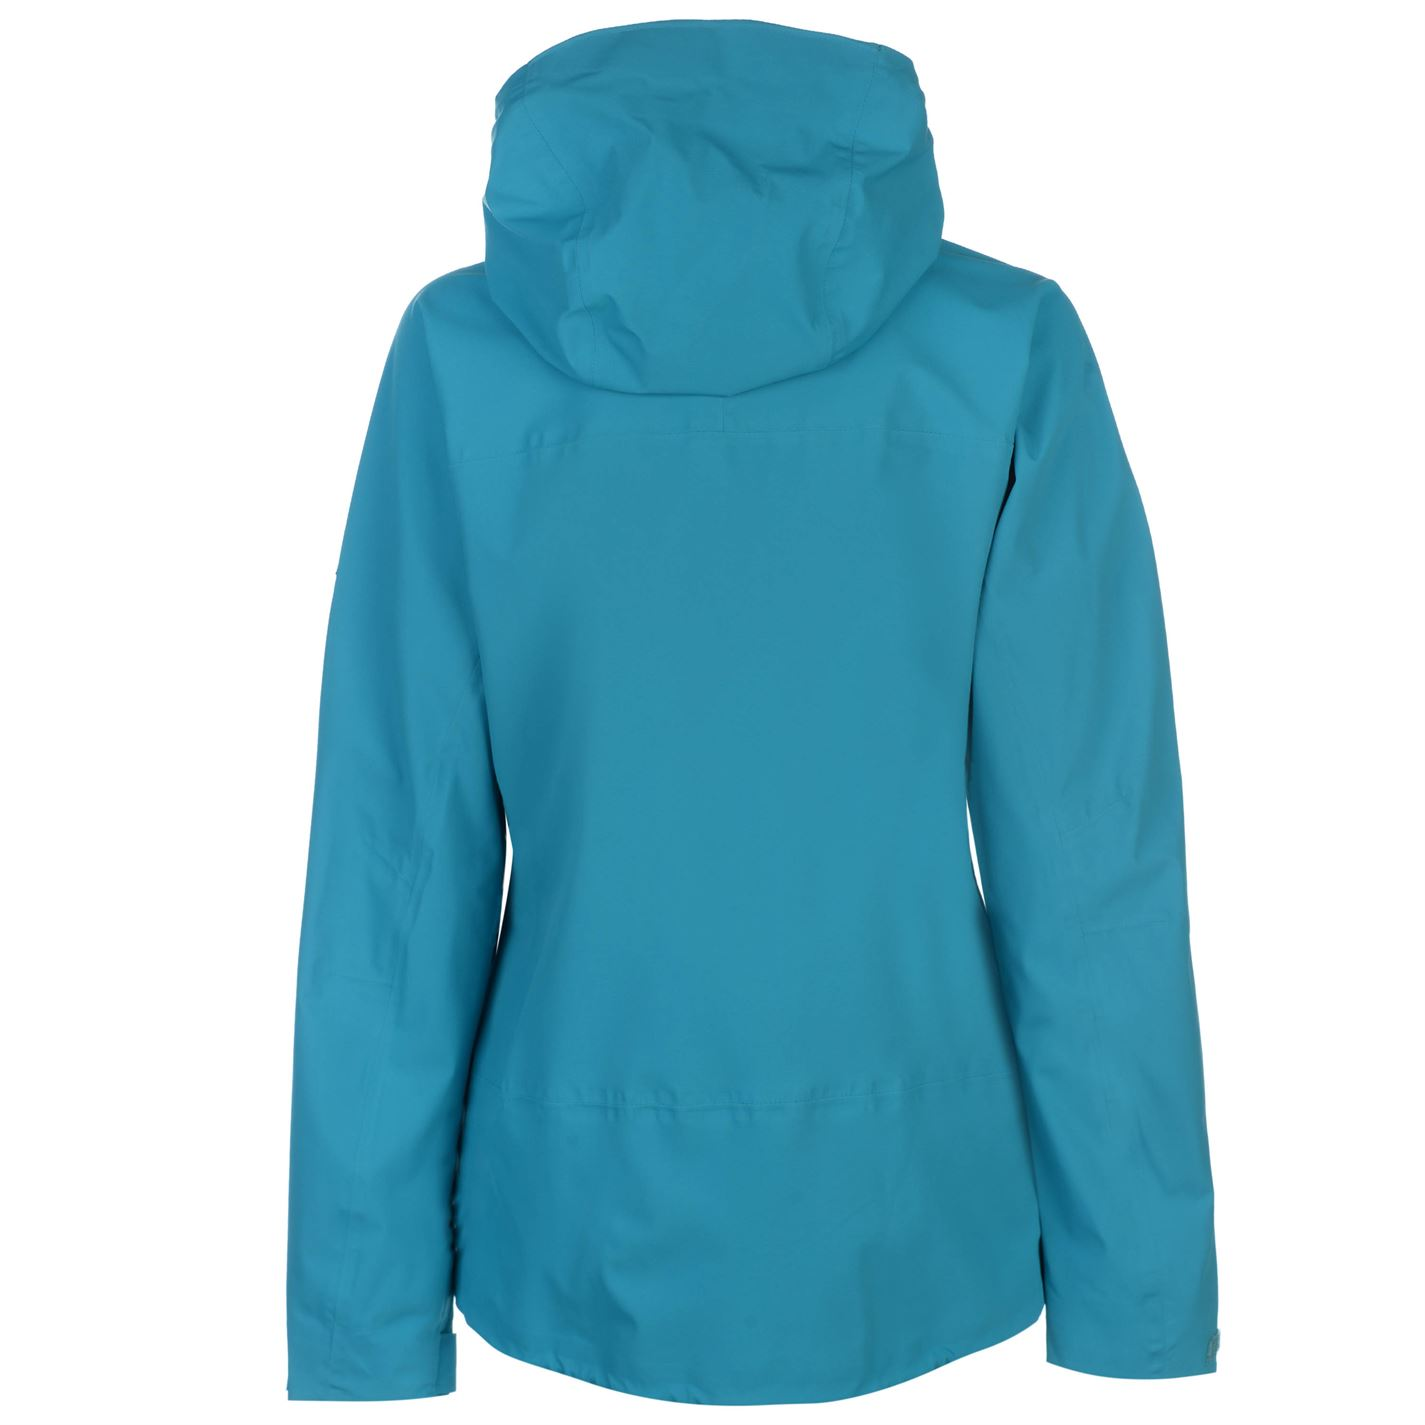 Karrimor 3l Ladies Jacket Water Nitrogen Top Coat Repellent Ocean rFAwqrRHZ